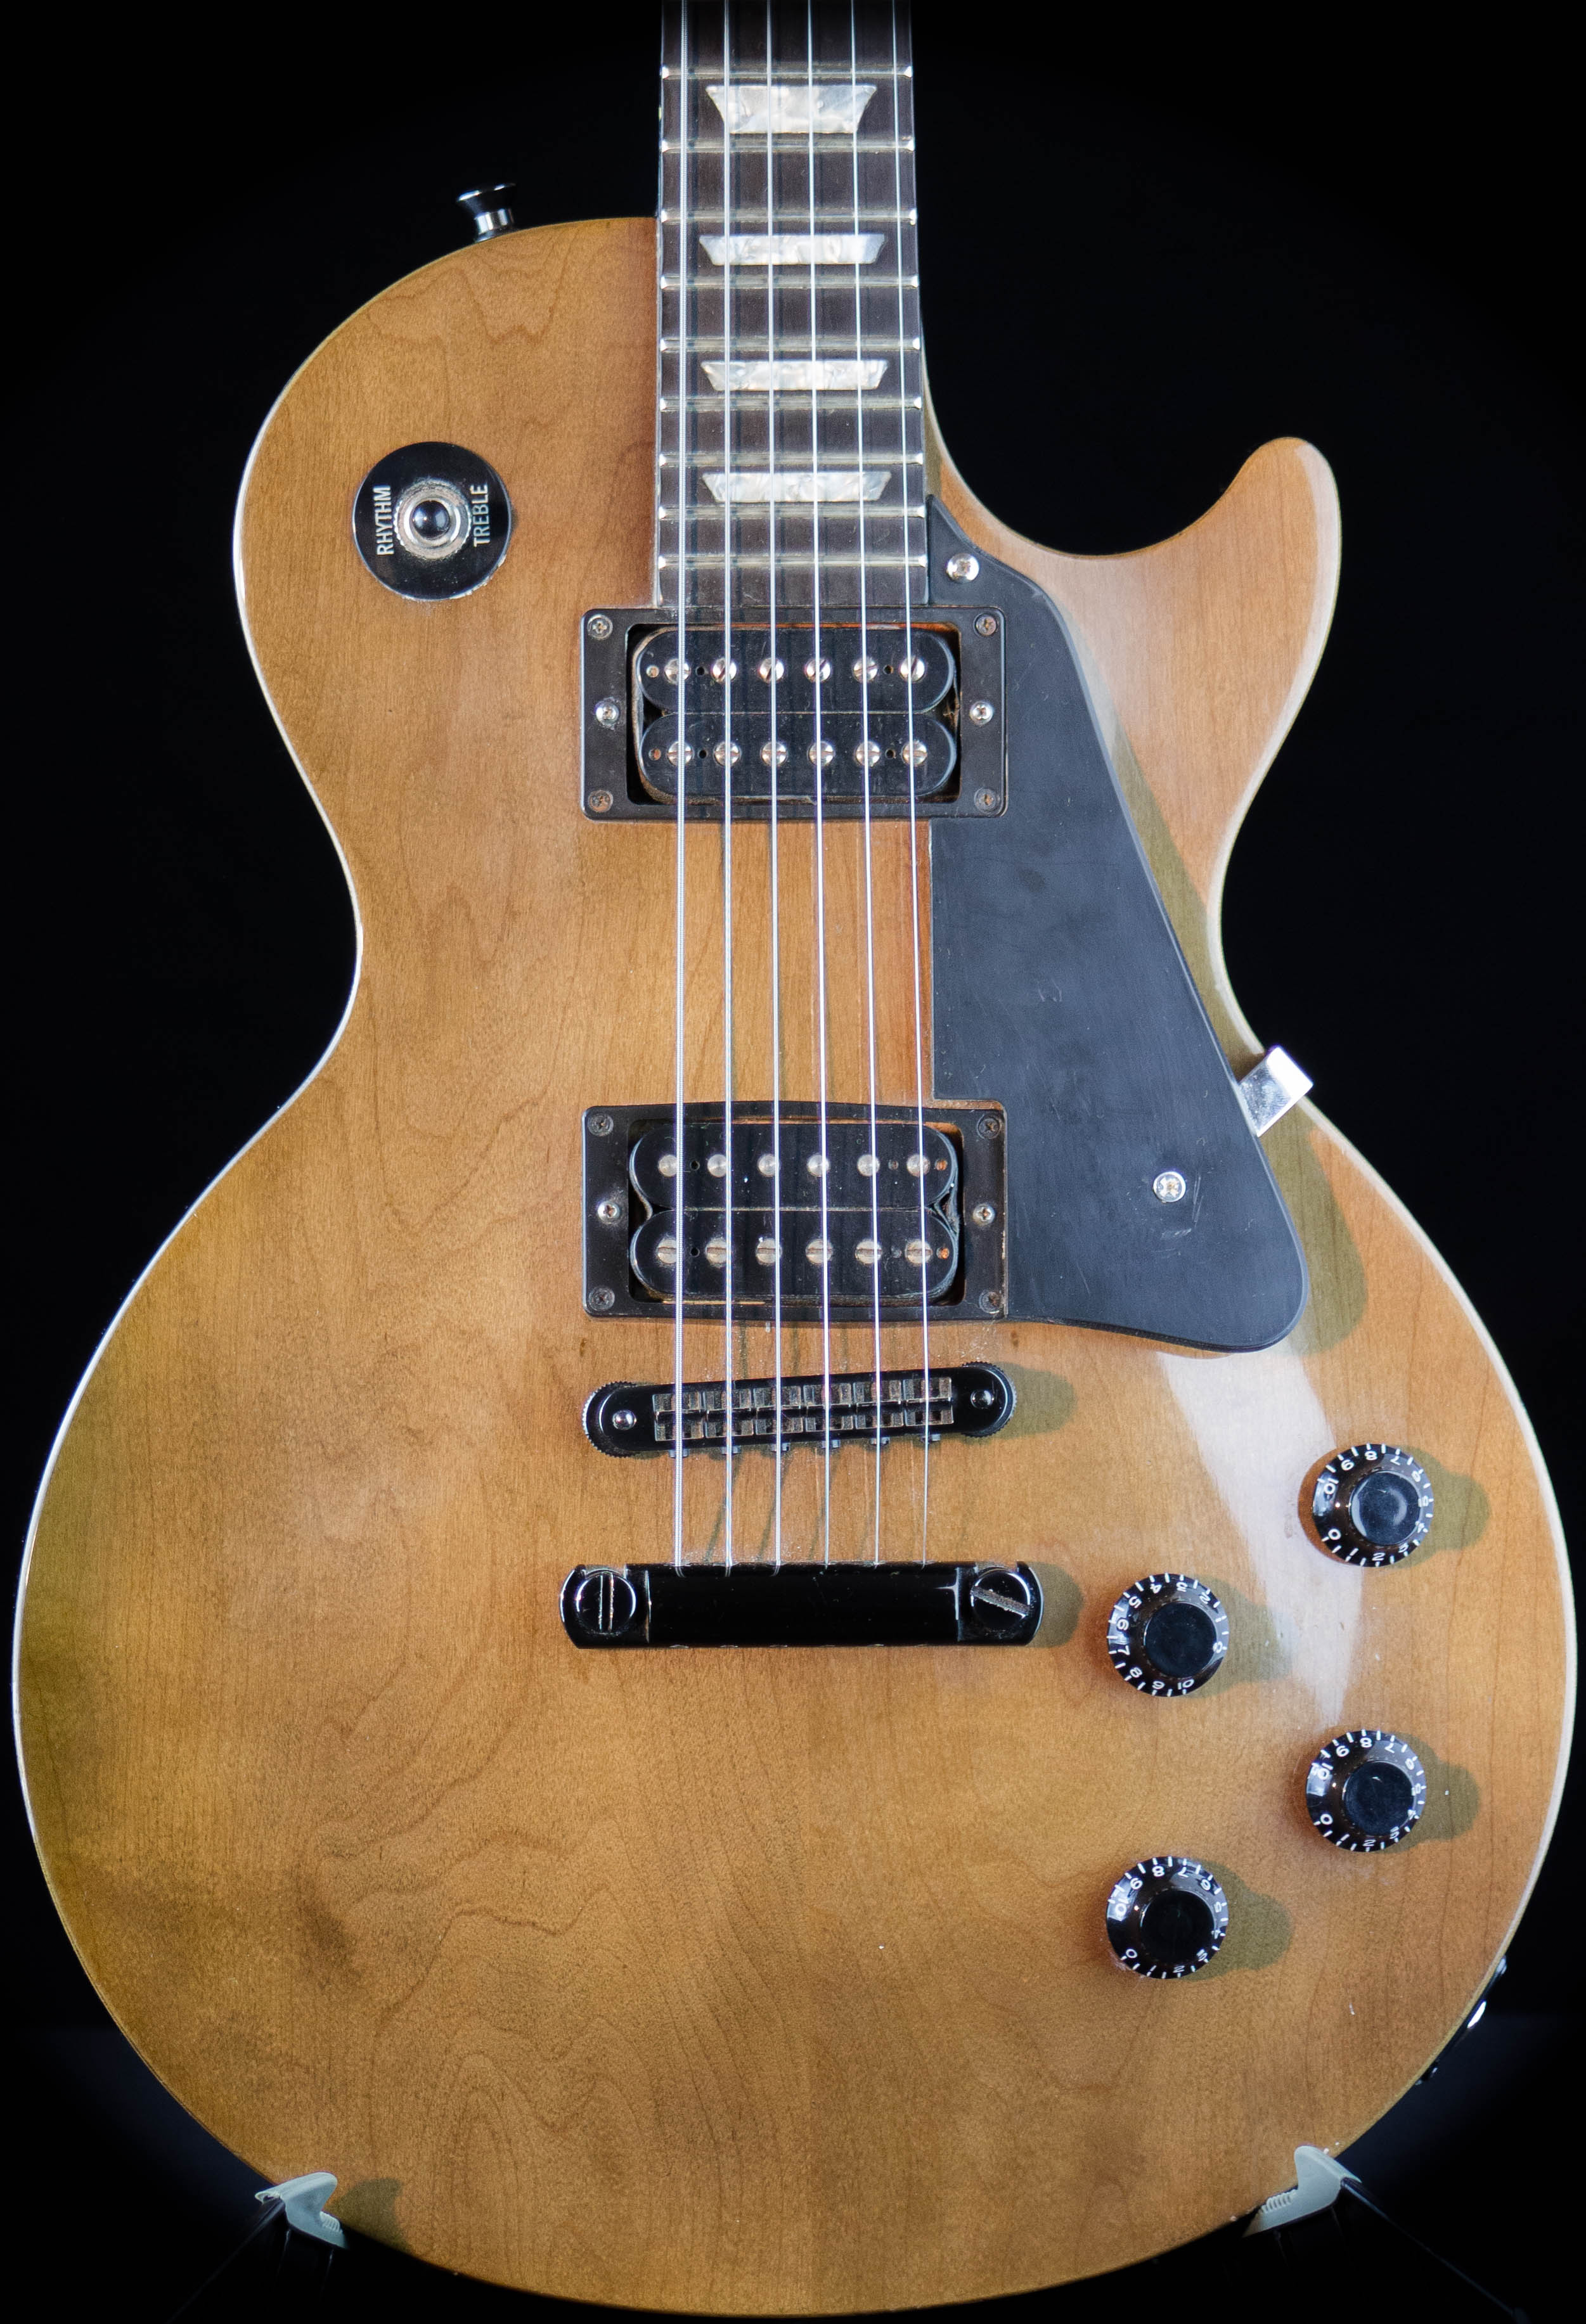 1991 gibson usa les paul studio lite trans black guitar grlc1665 ebay. Black Bedroom Furniture Sets. Home Design Ideas